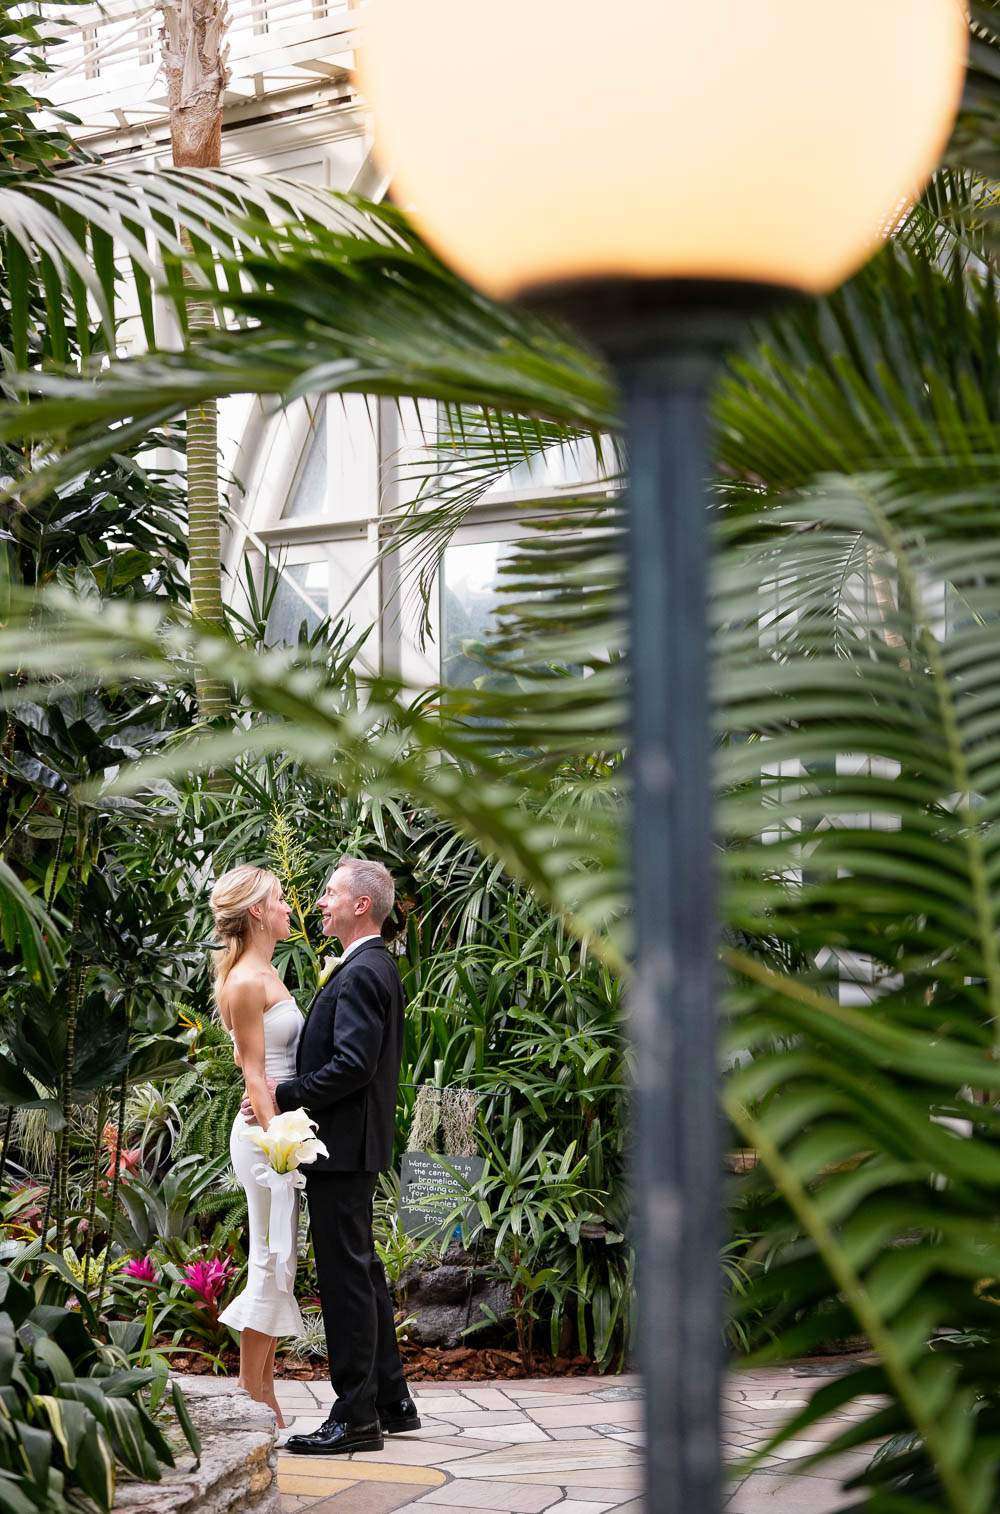 — fiance kissing with exotic plants —